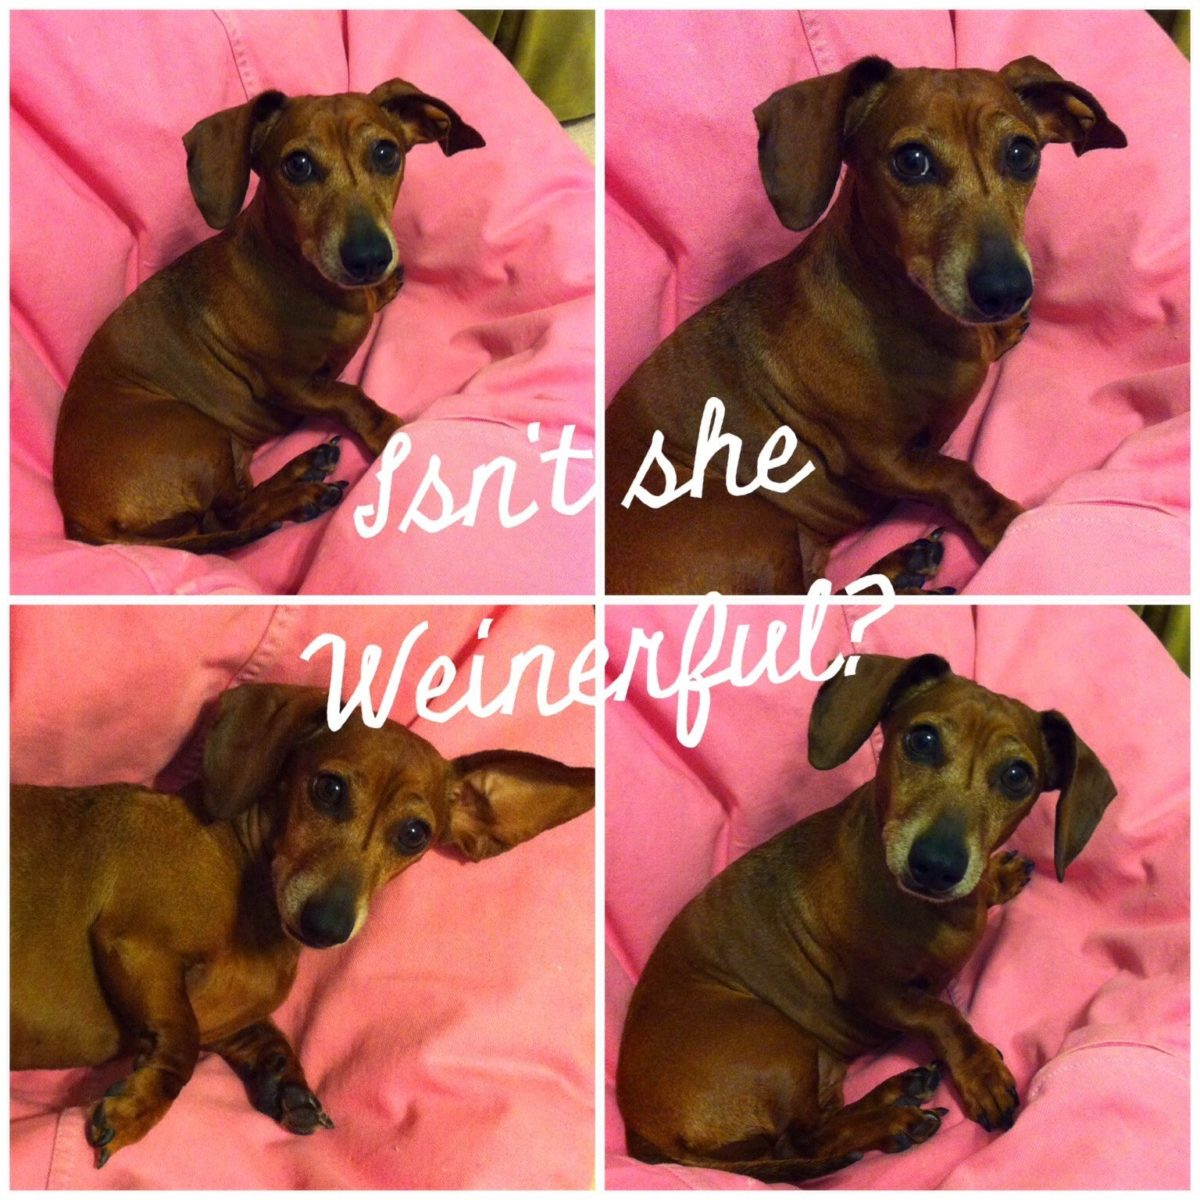 Her Love was Weinerful